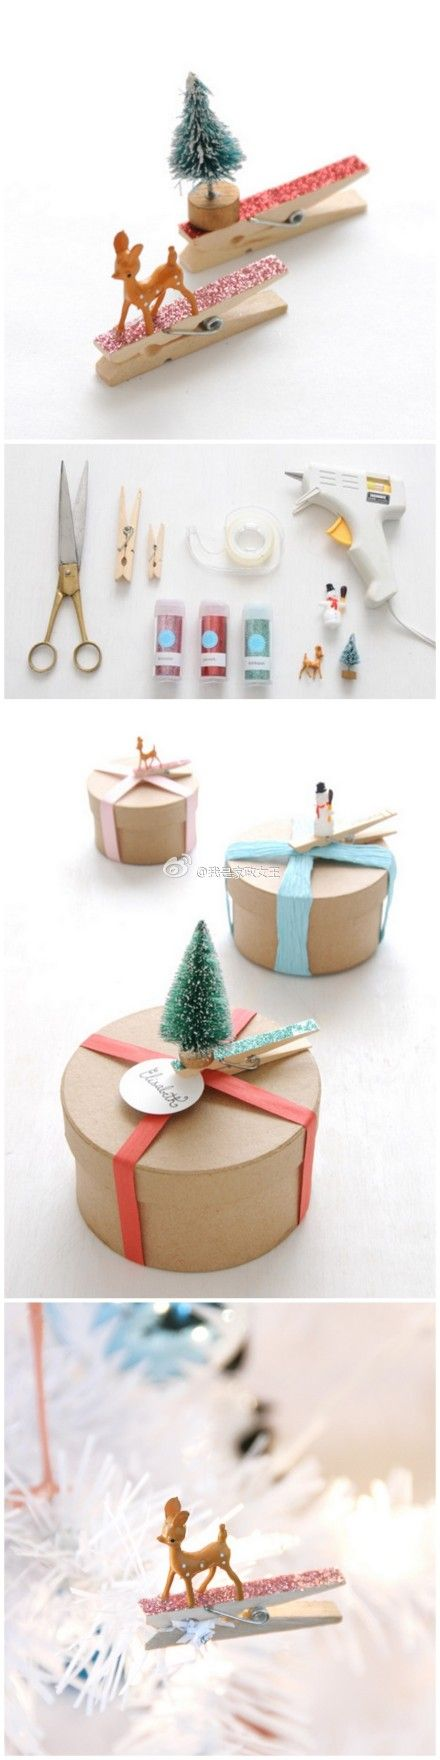 Clothespin gift toppers #splendidholiday